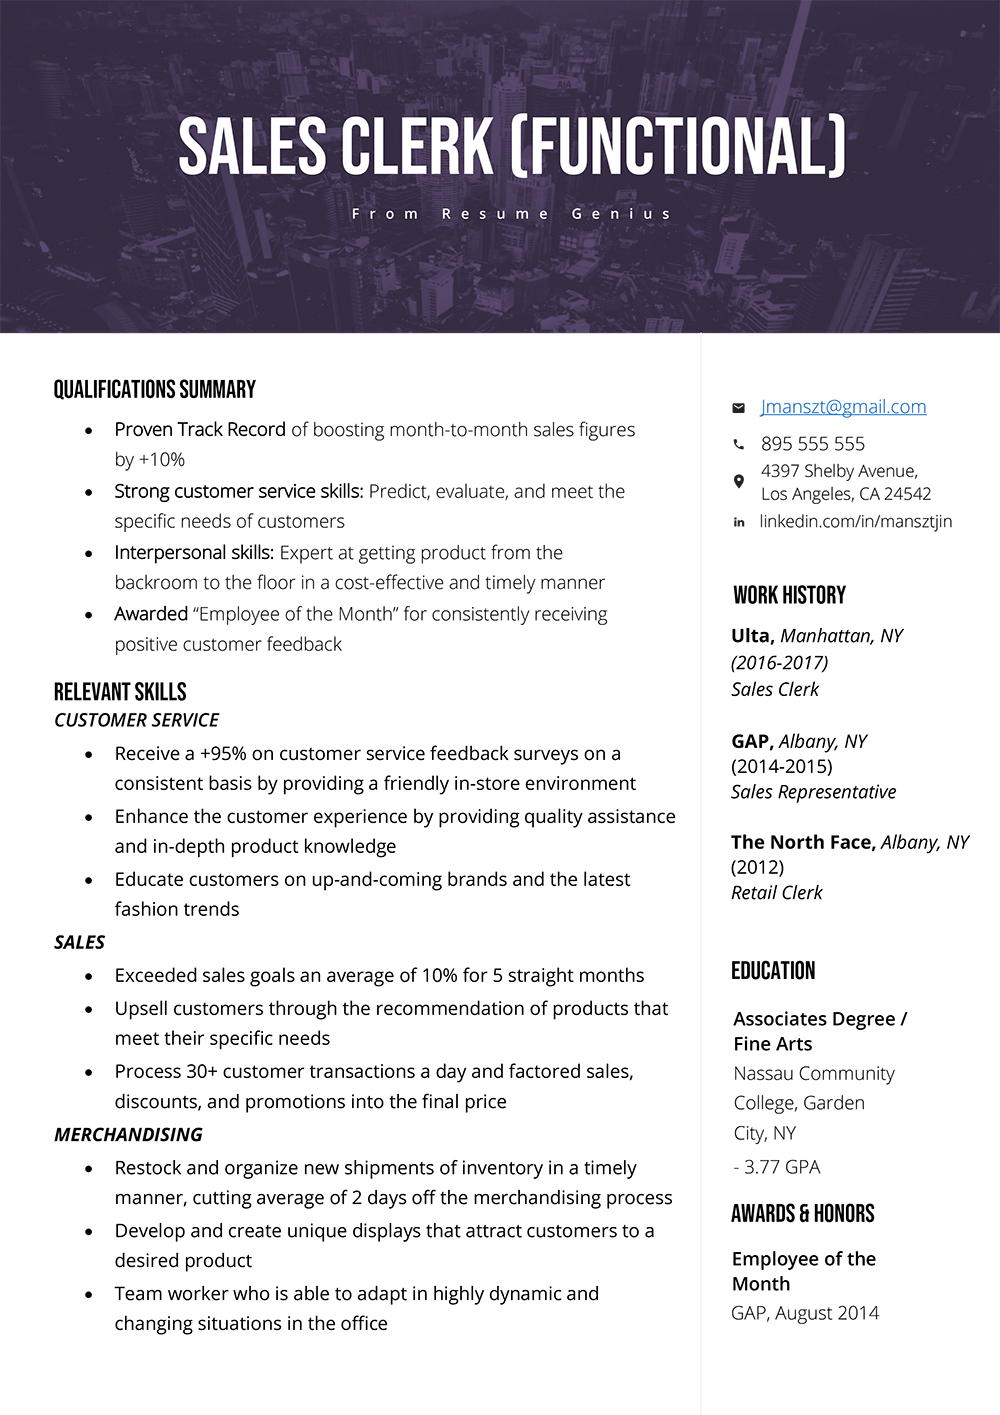 Resume Summary Examples How To Write A Qualifications Summary Resume Genius